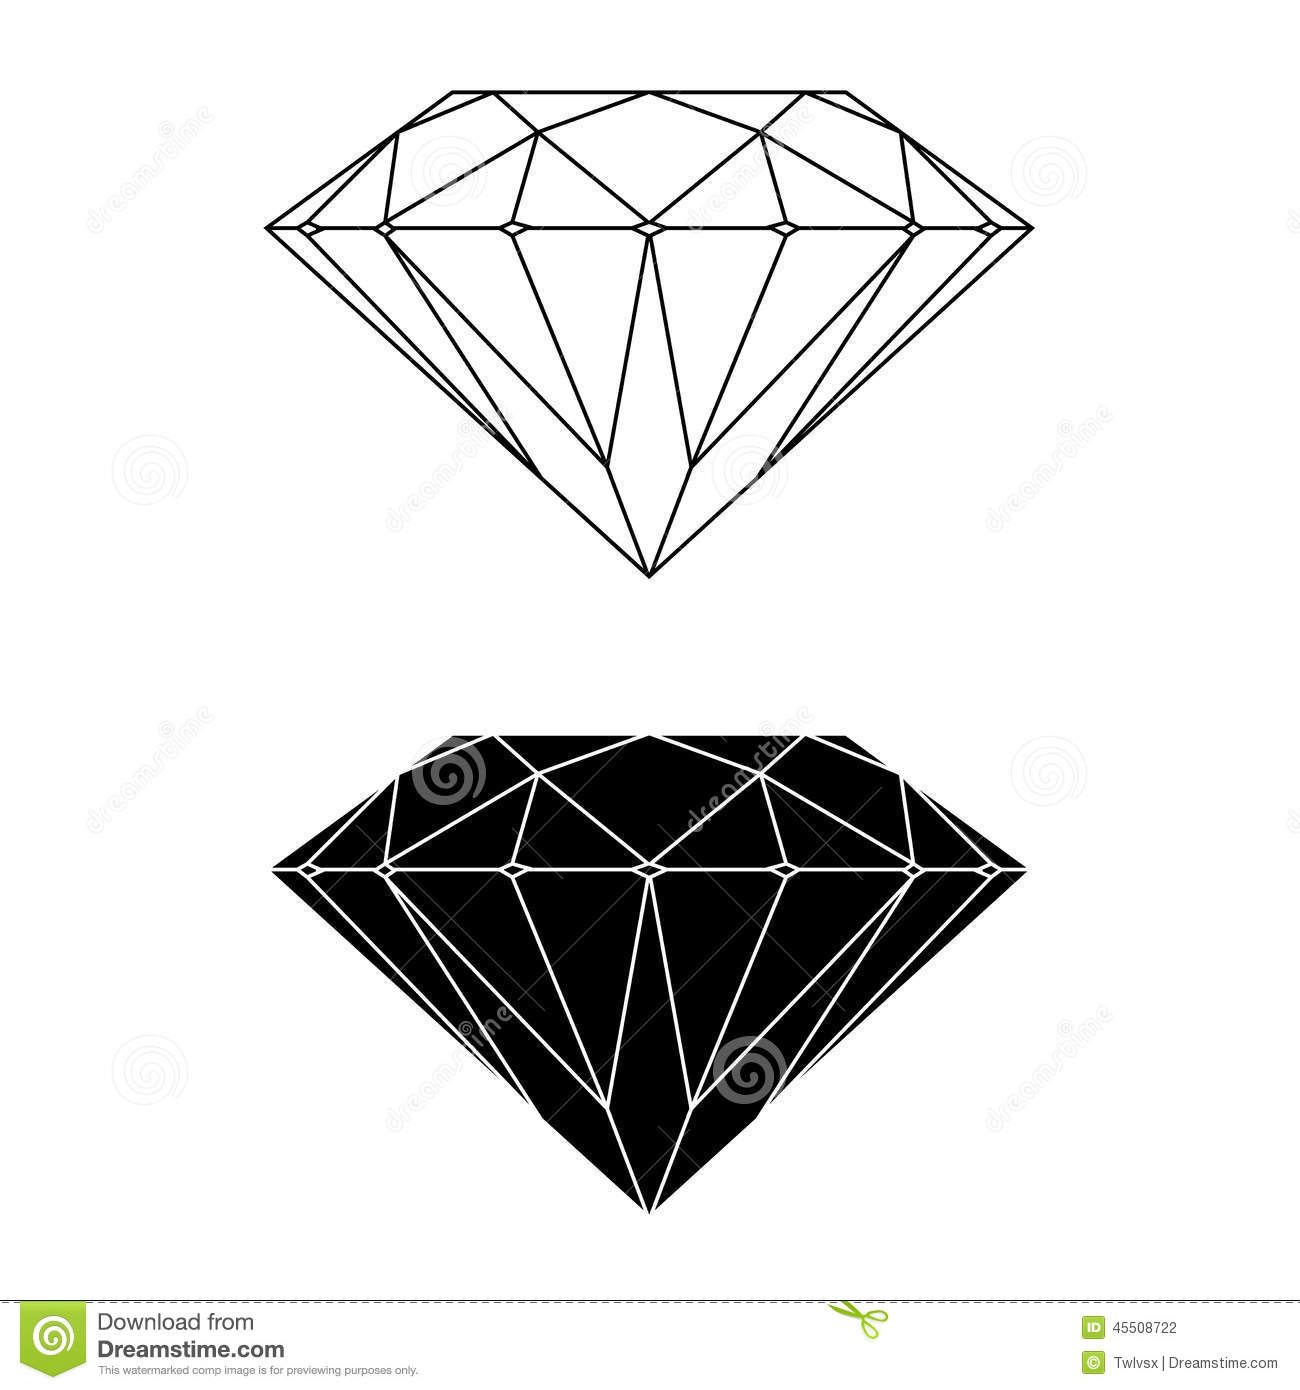 Diamond vector art free